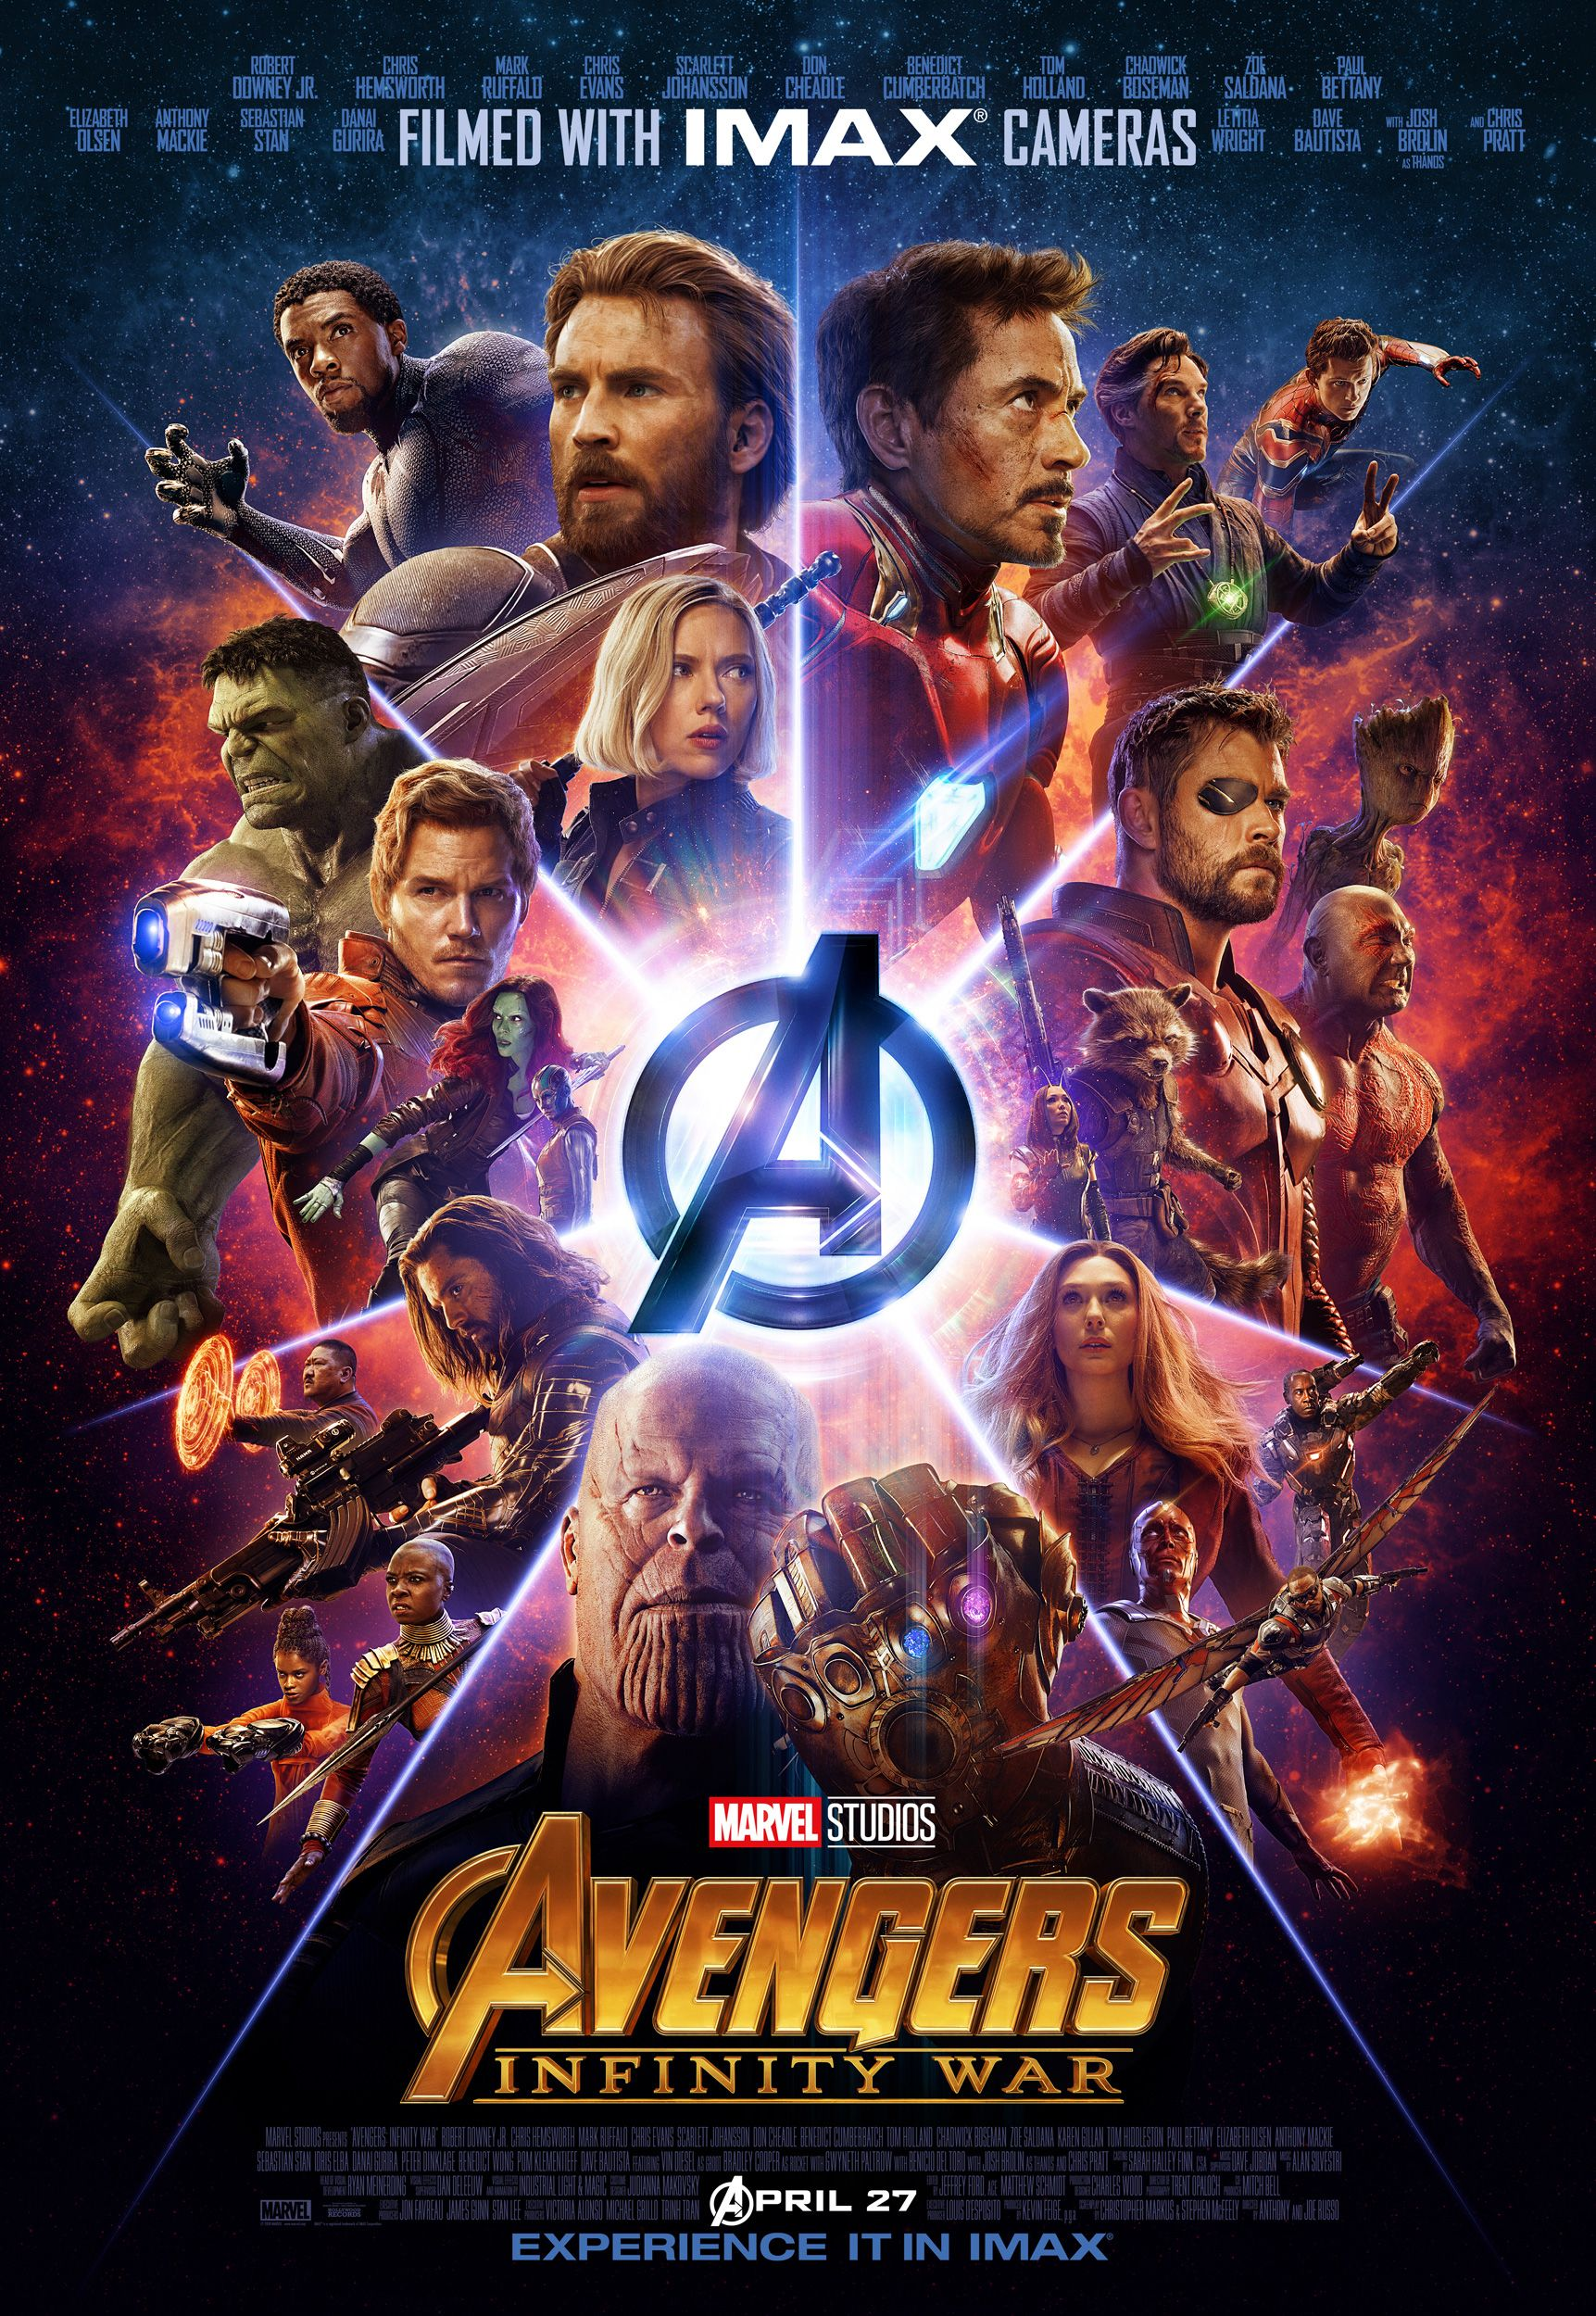 Full4k Hd Watch Avengers Infinity War 2018 Online Free Movie Streaming On Pinterest Avengers Infinity War Marvel Infinity War Marvel